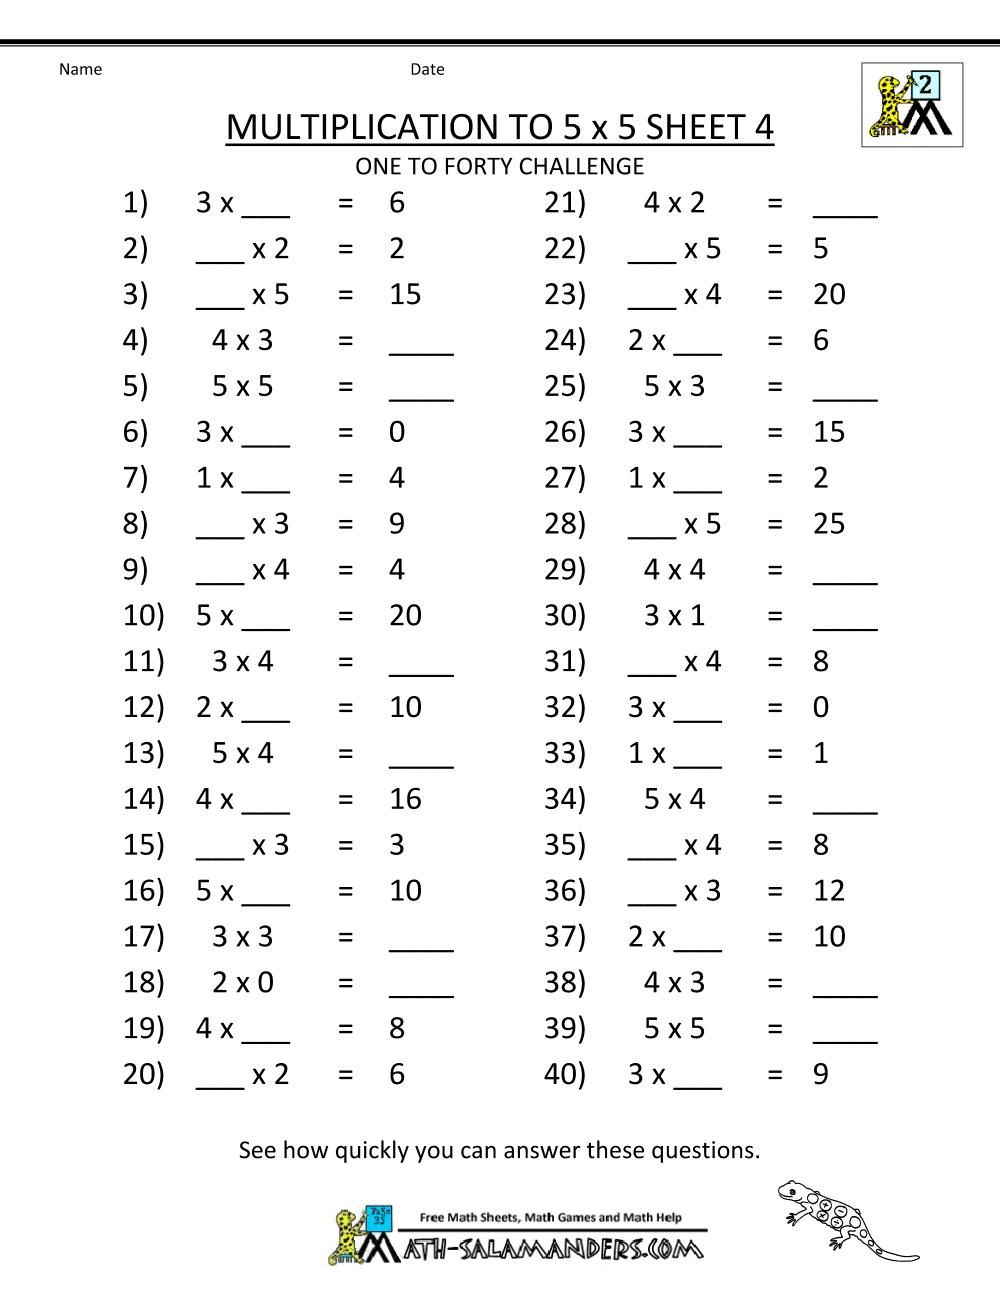 Multiplication Worksheets Grade 3 Coloring | Math regarding Worksheets On Multiplication For Grade 3